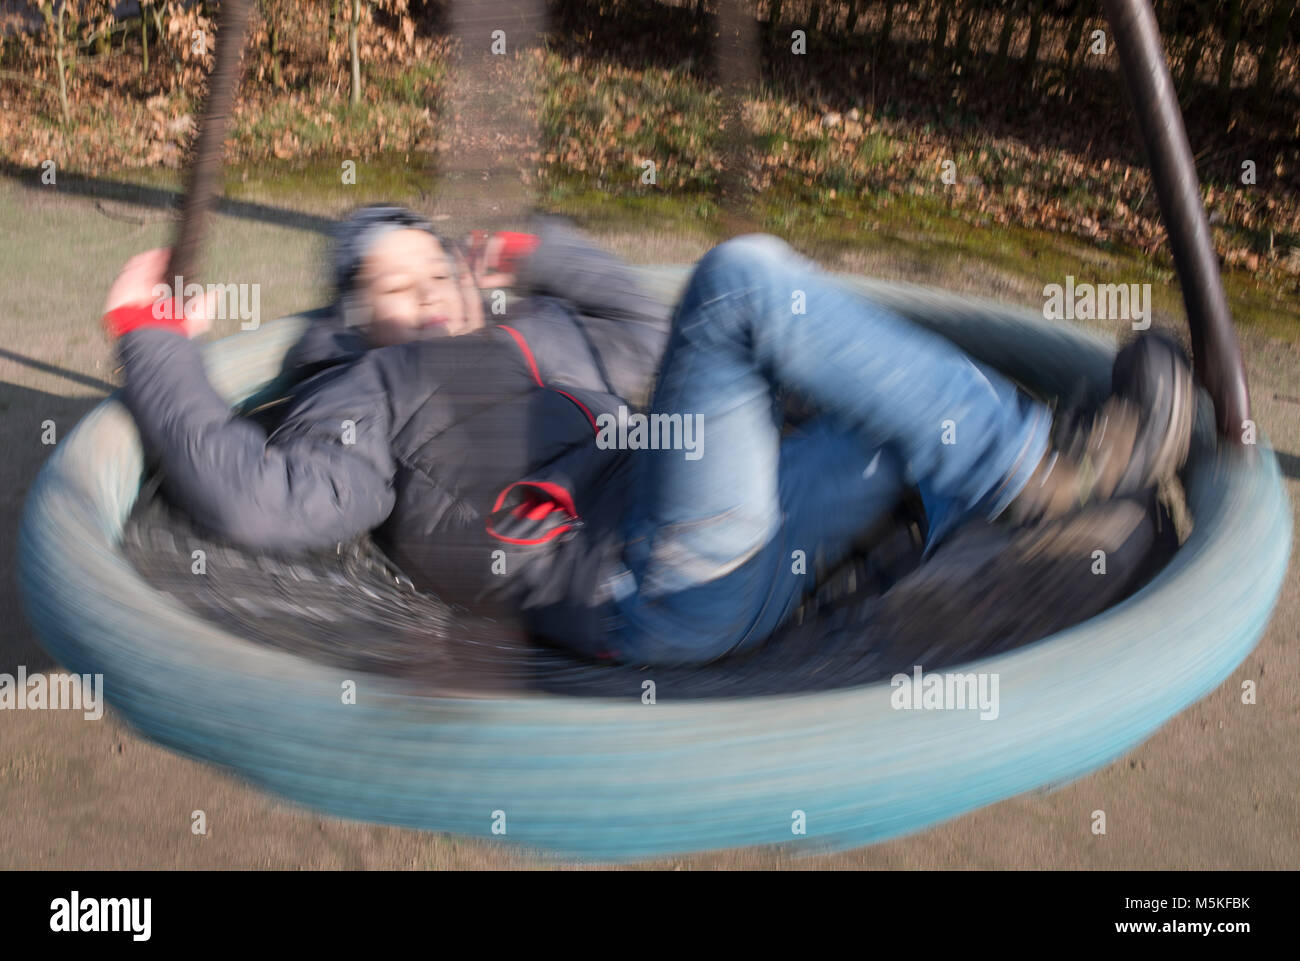 Boy swinging and whirling on a round swing, playground, blurred by motion and speed. - Stock Image